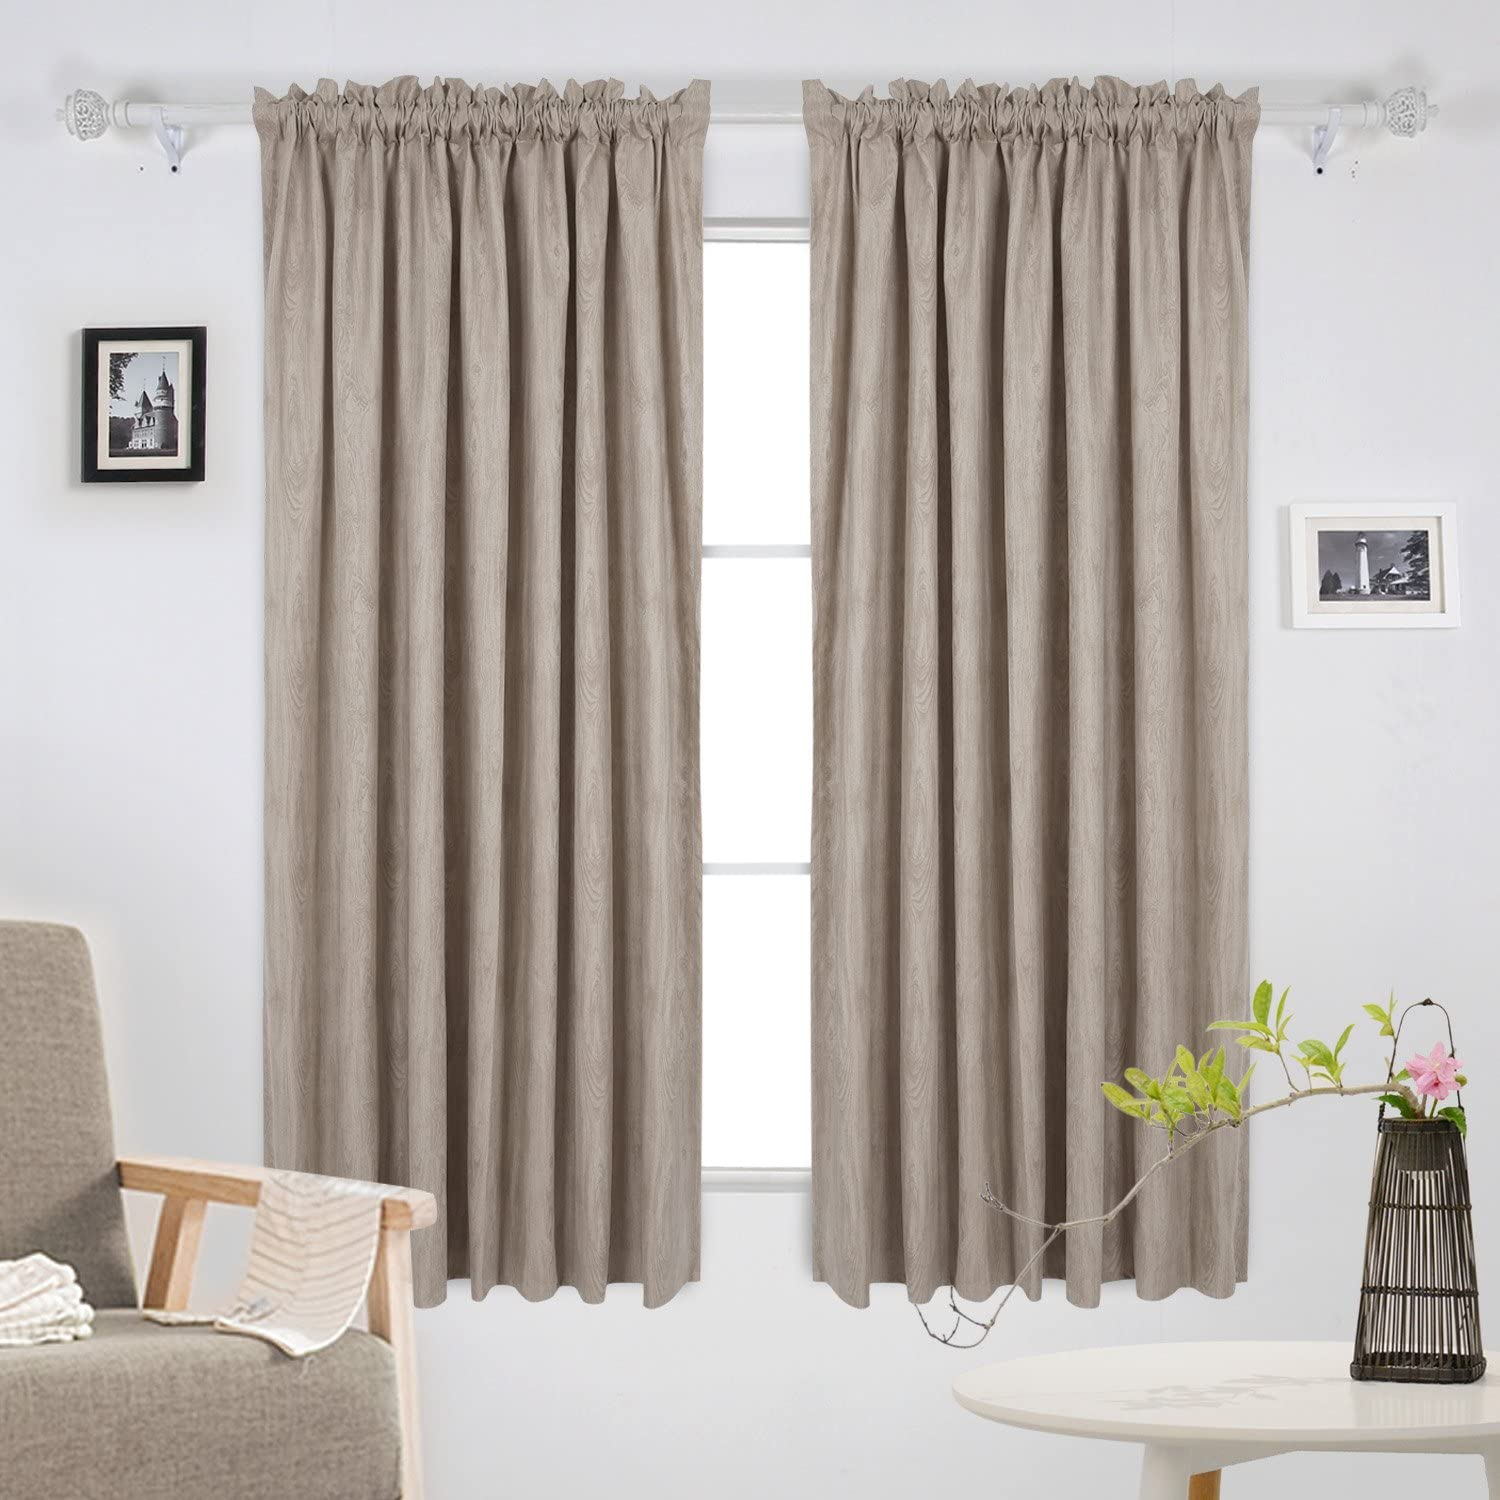 Deconovo Room Darkening Rod Pocket Wood Grain Textured Faux Suede Embossed Curtains for Bedroom, 52x63 Inch, Cappuccino